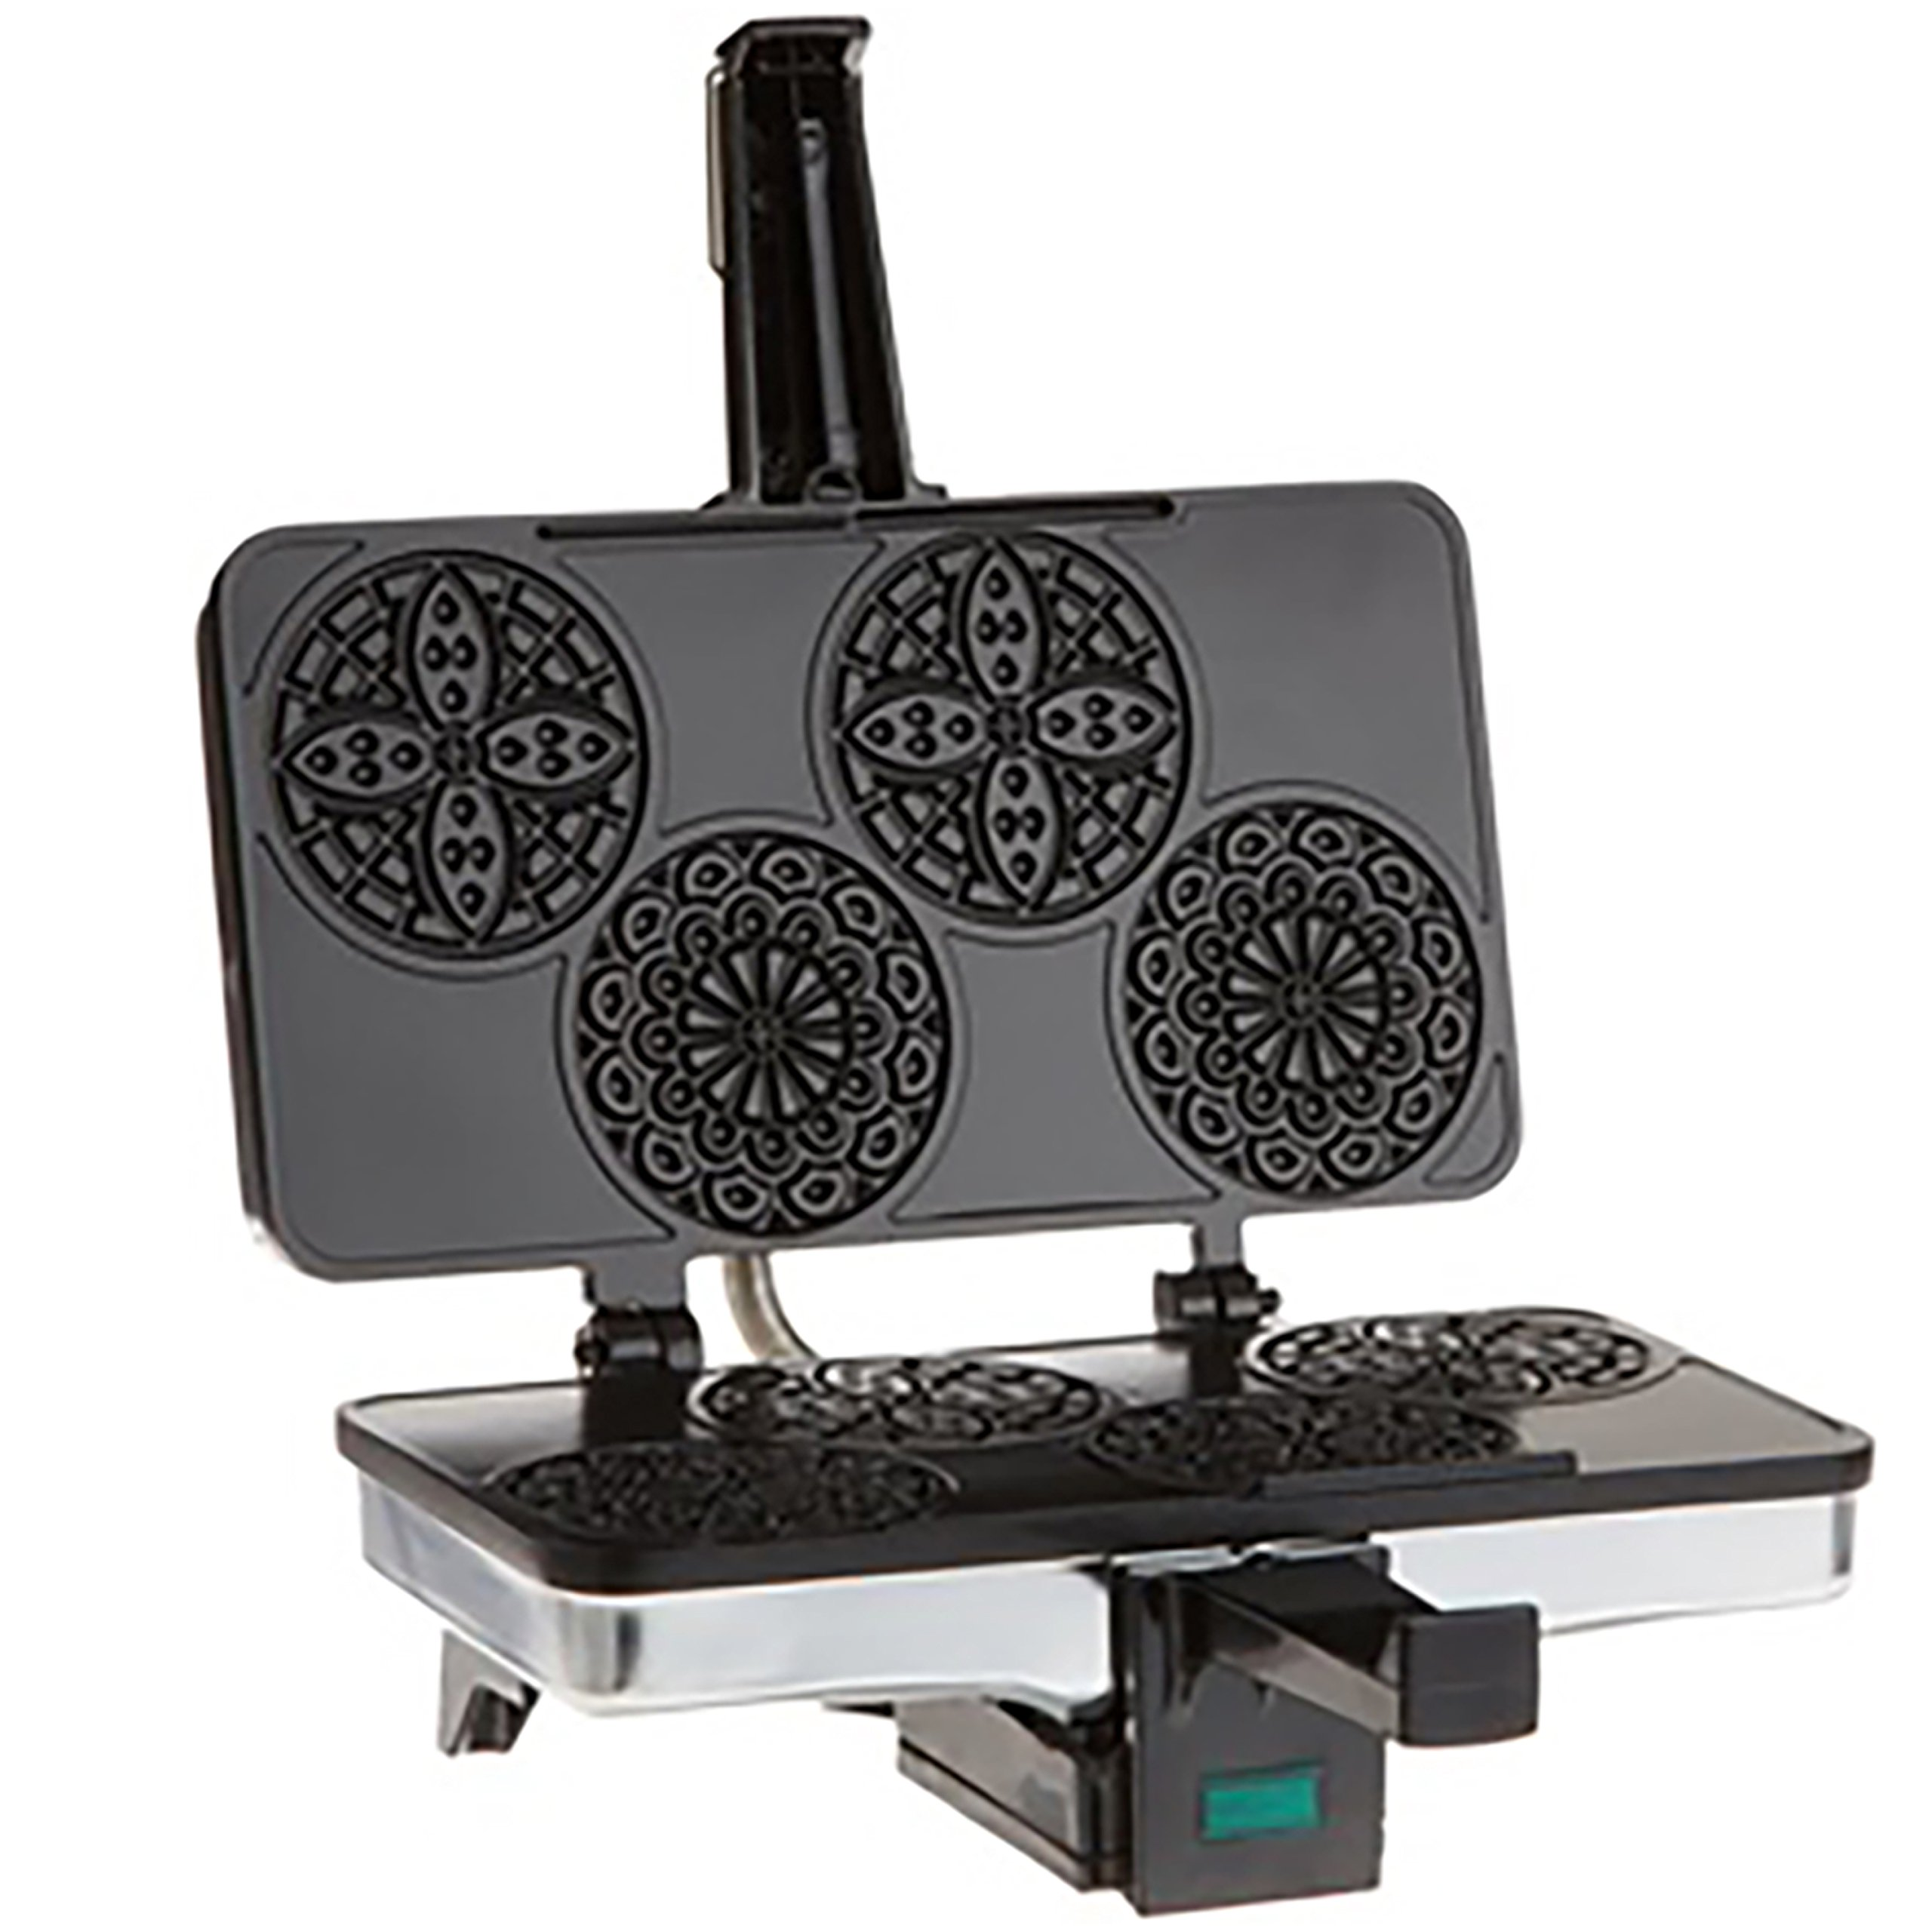 CucinaPro Mini Italian Pizzelle Waffle Maker Iron - Makes Four 3 1/4 Inch Pizzelle Traditional Cookies - Black Non-Stick Interior by CucinaPro